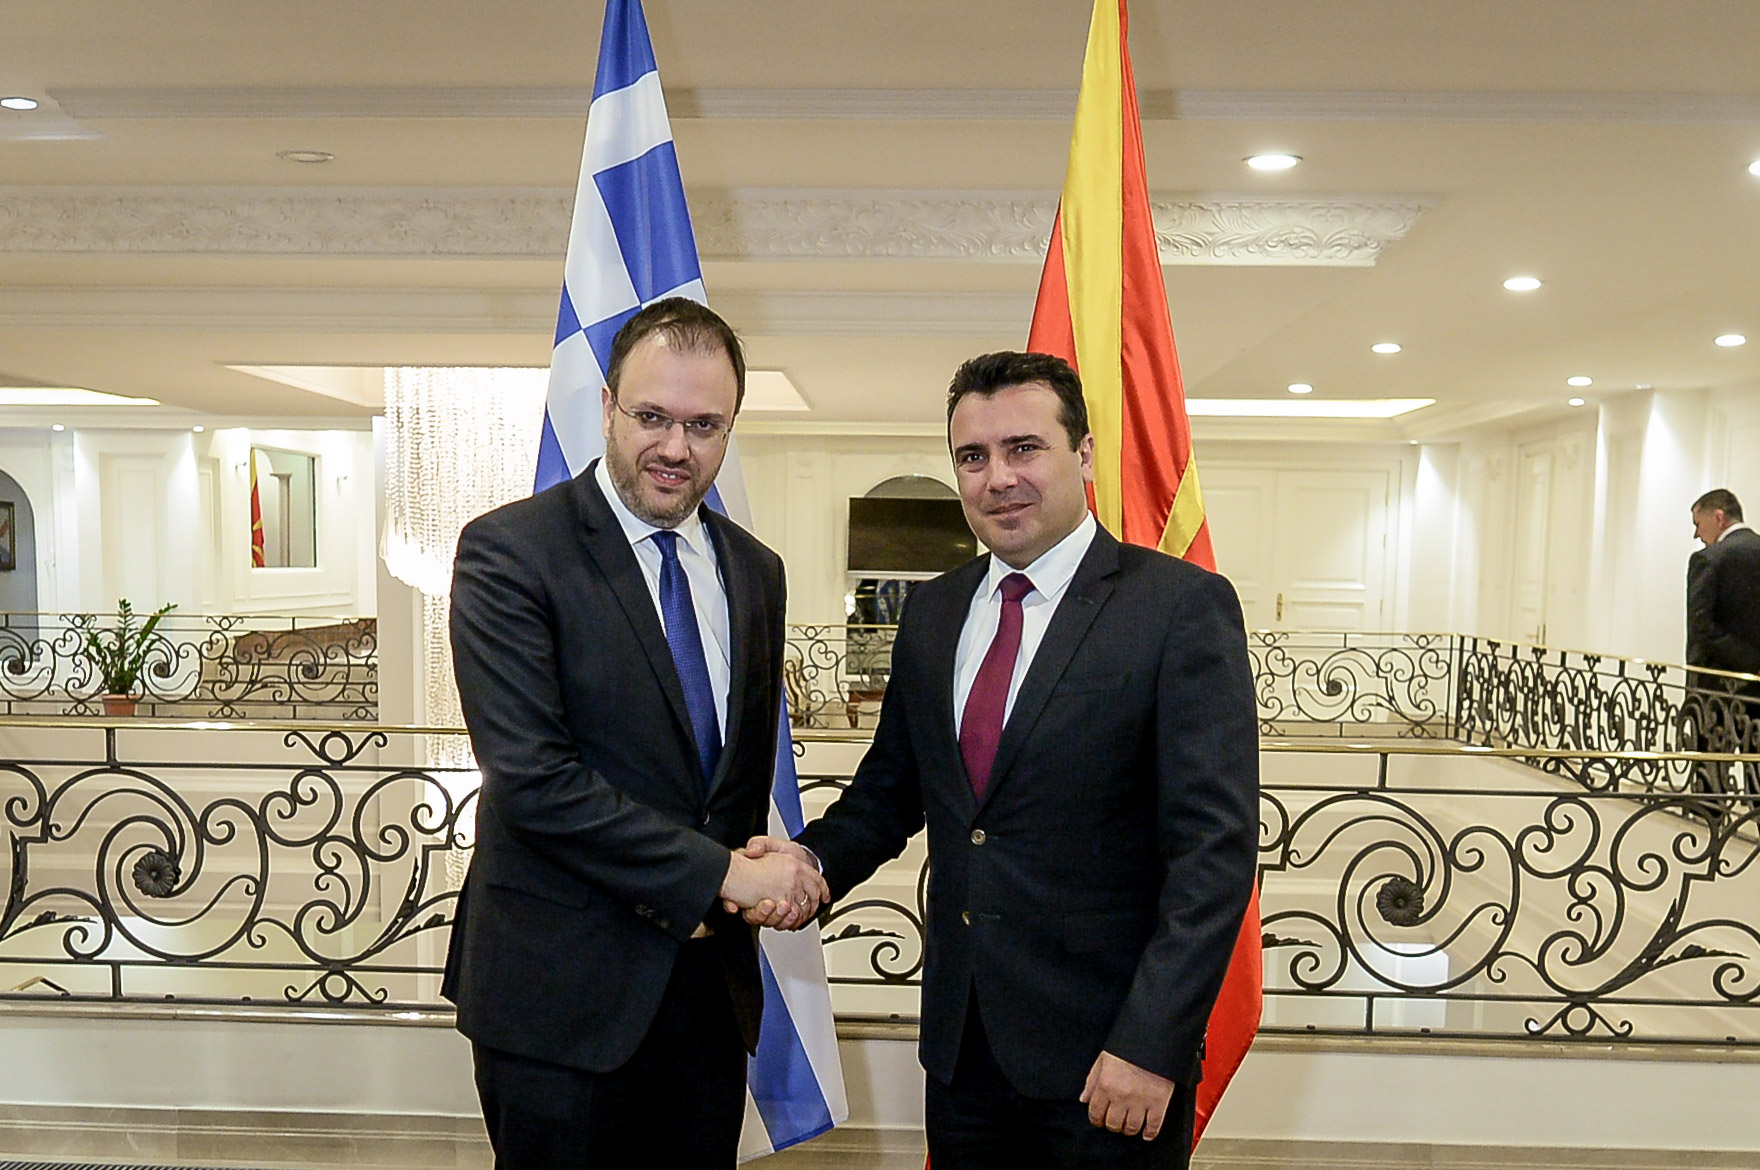 Zaev-Theocharopoulos: The Prespa Agreement is a historic step